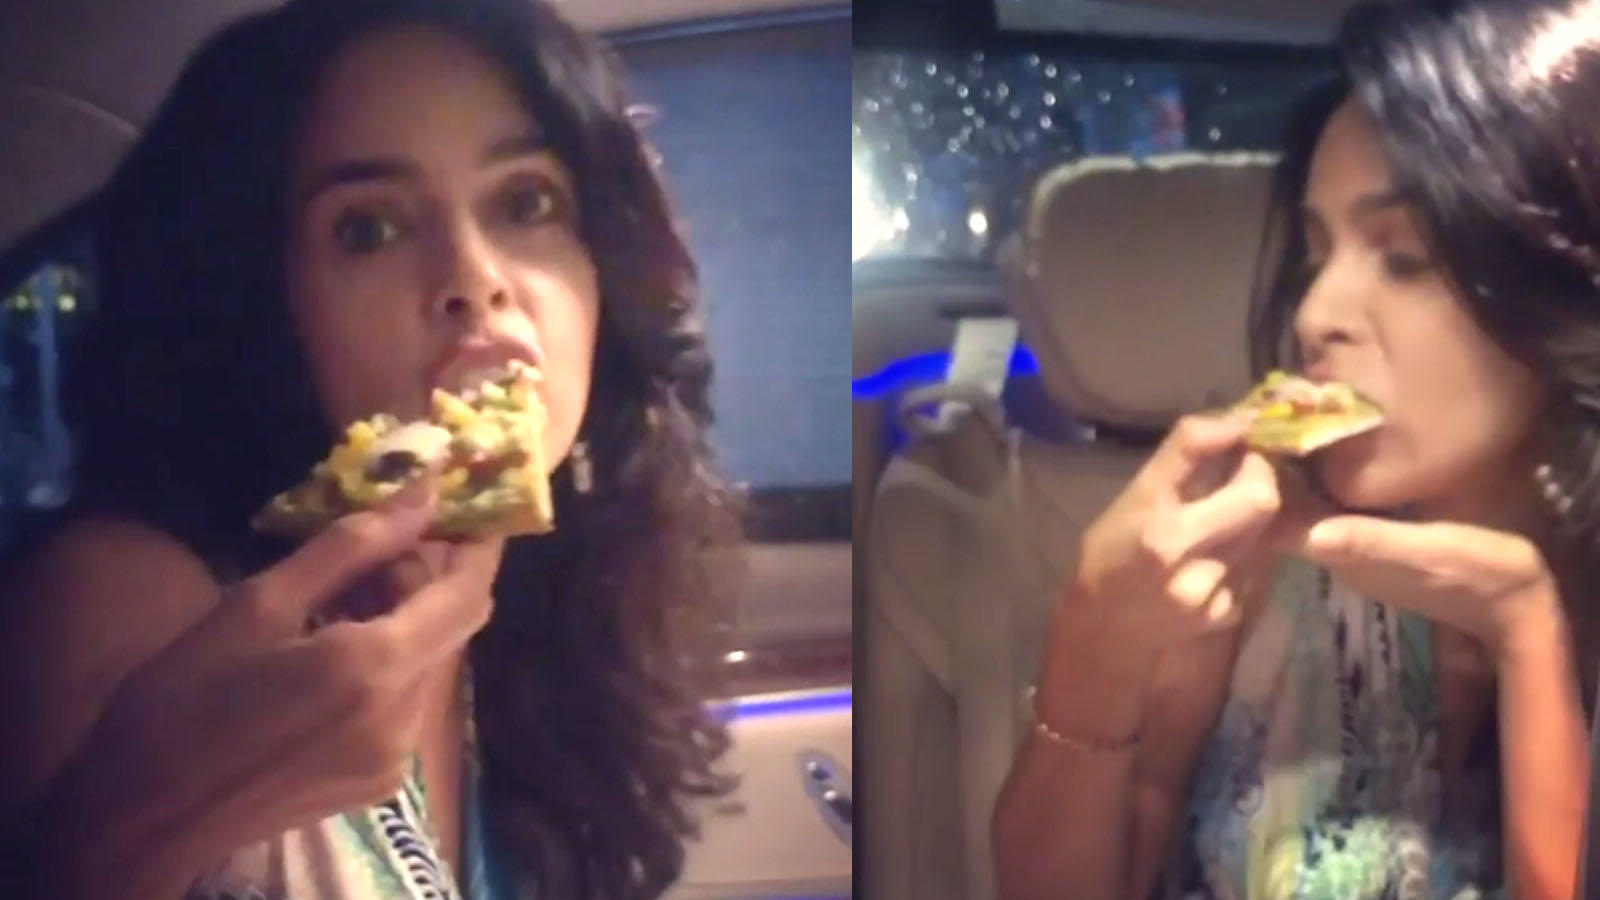 watch-mallika-sherawat-turns-her-car-into-a-cafe-amidst-the-lockdown-binges-on-vegan-pizza-with-her-girls